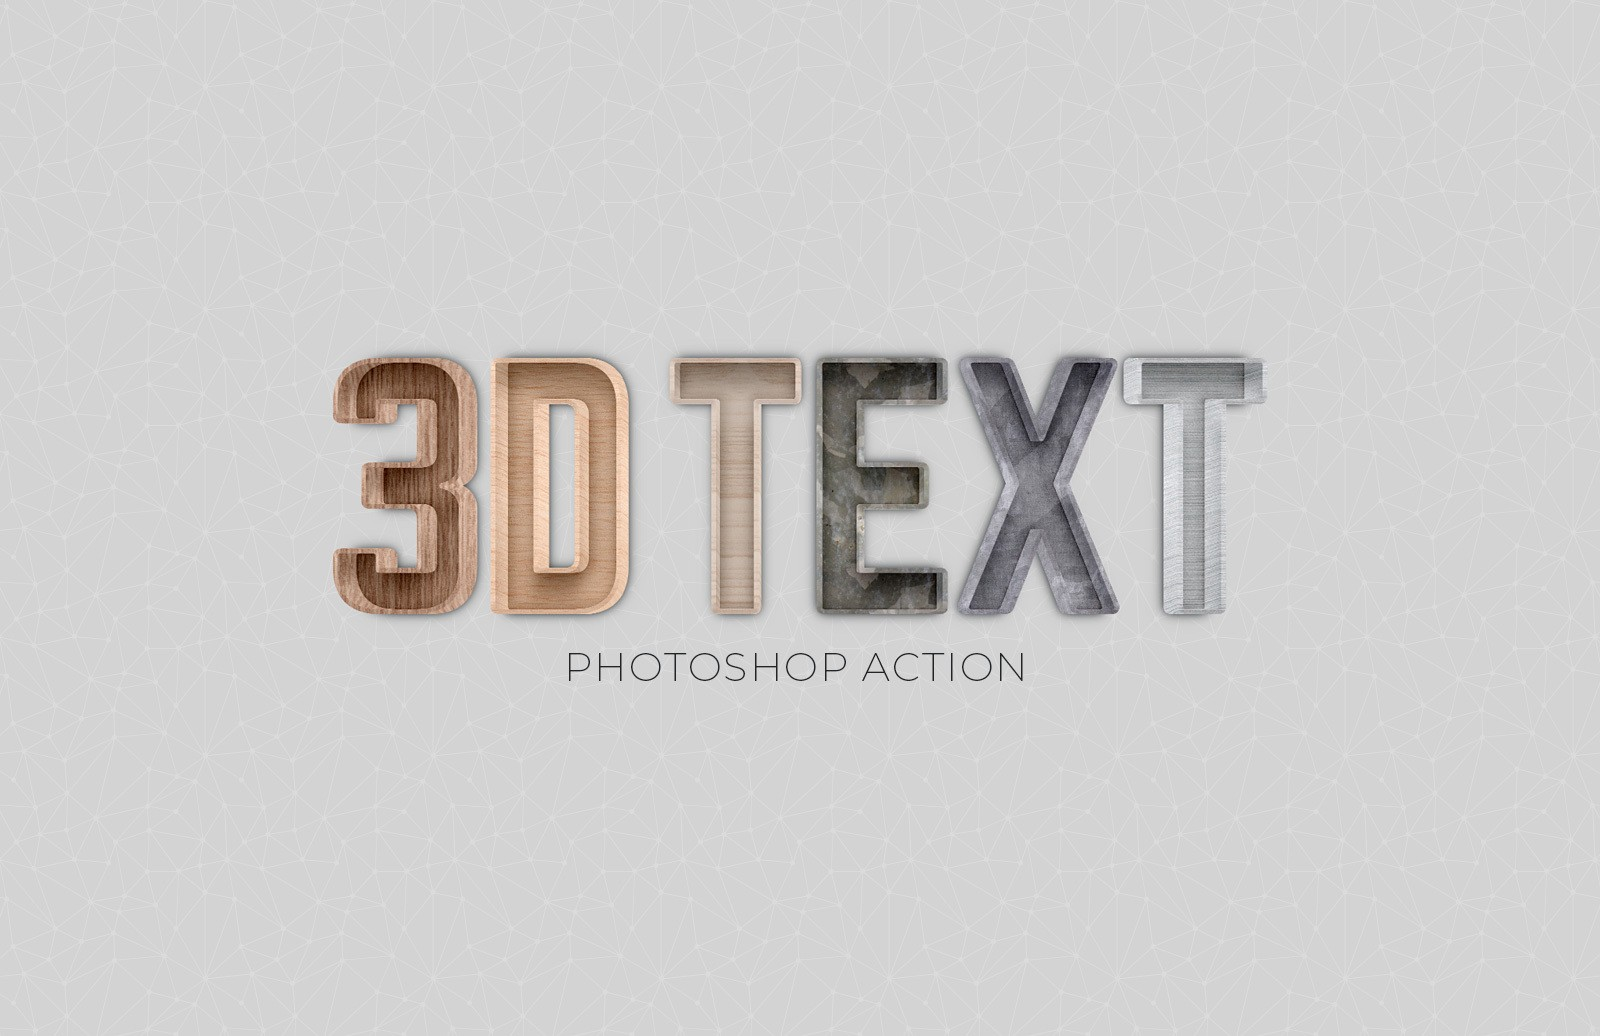 3D Text Photoshop Action